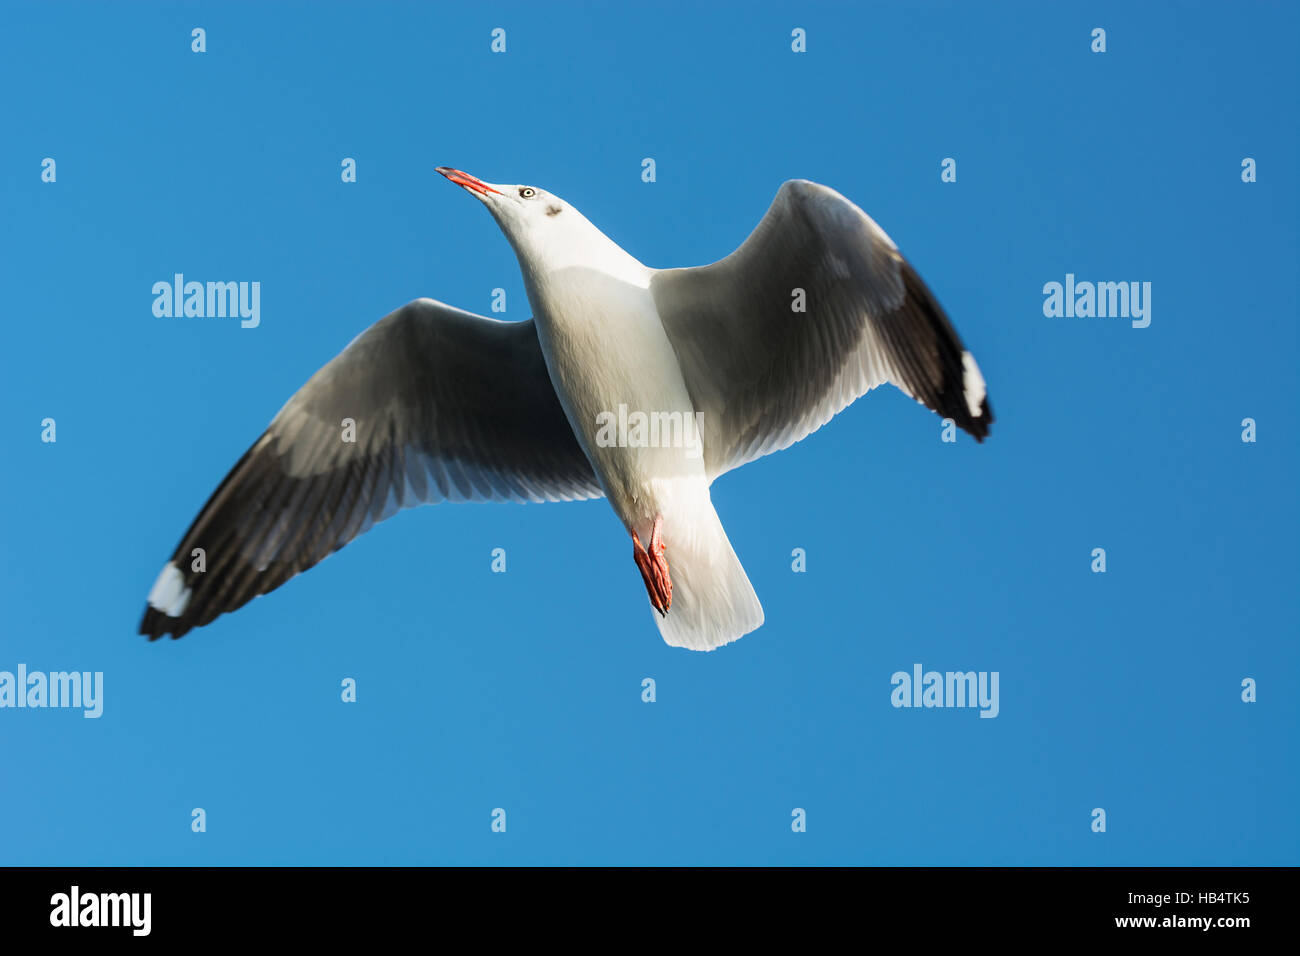 Seagull soars up against the blue sky - Stock Image